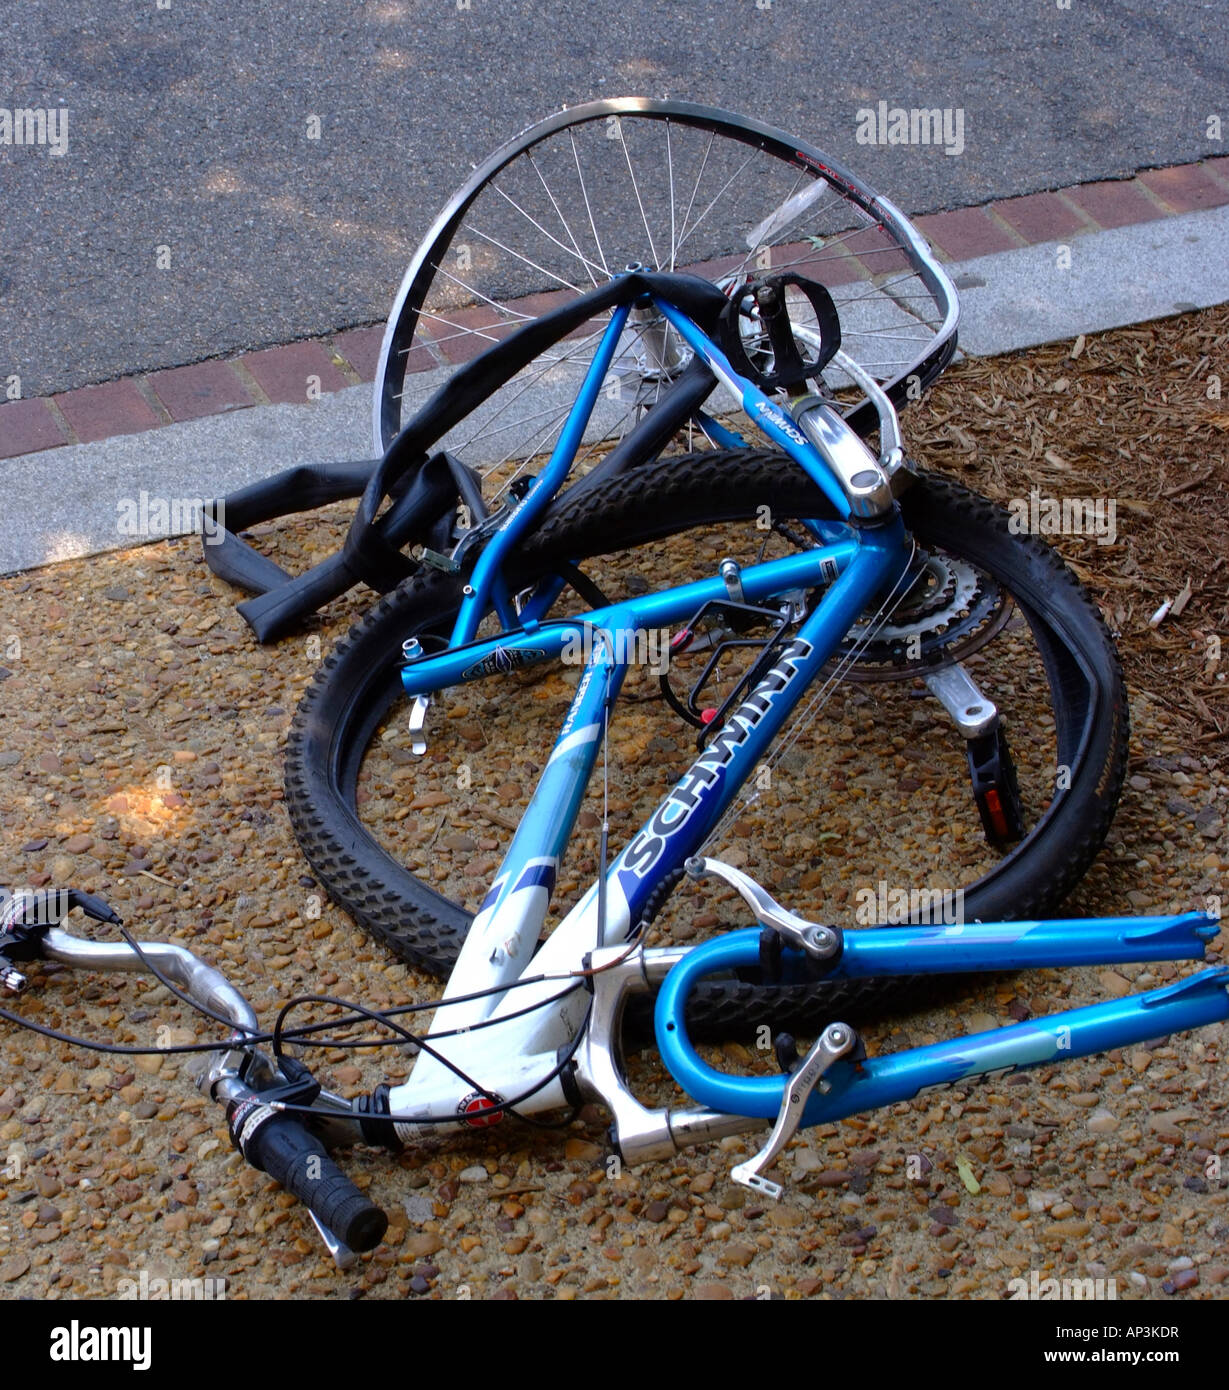 A Mangled Blue Bicycle Lies Wrecked on a Sidewalk in Washington DC United States America USA - Stock Image